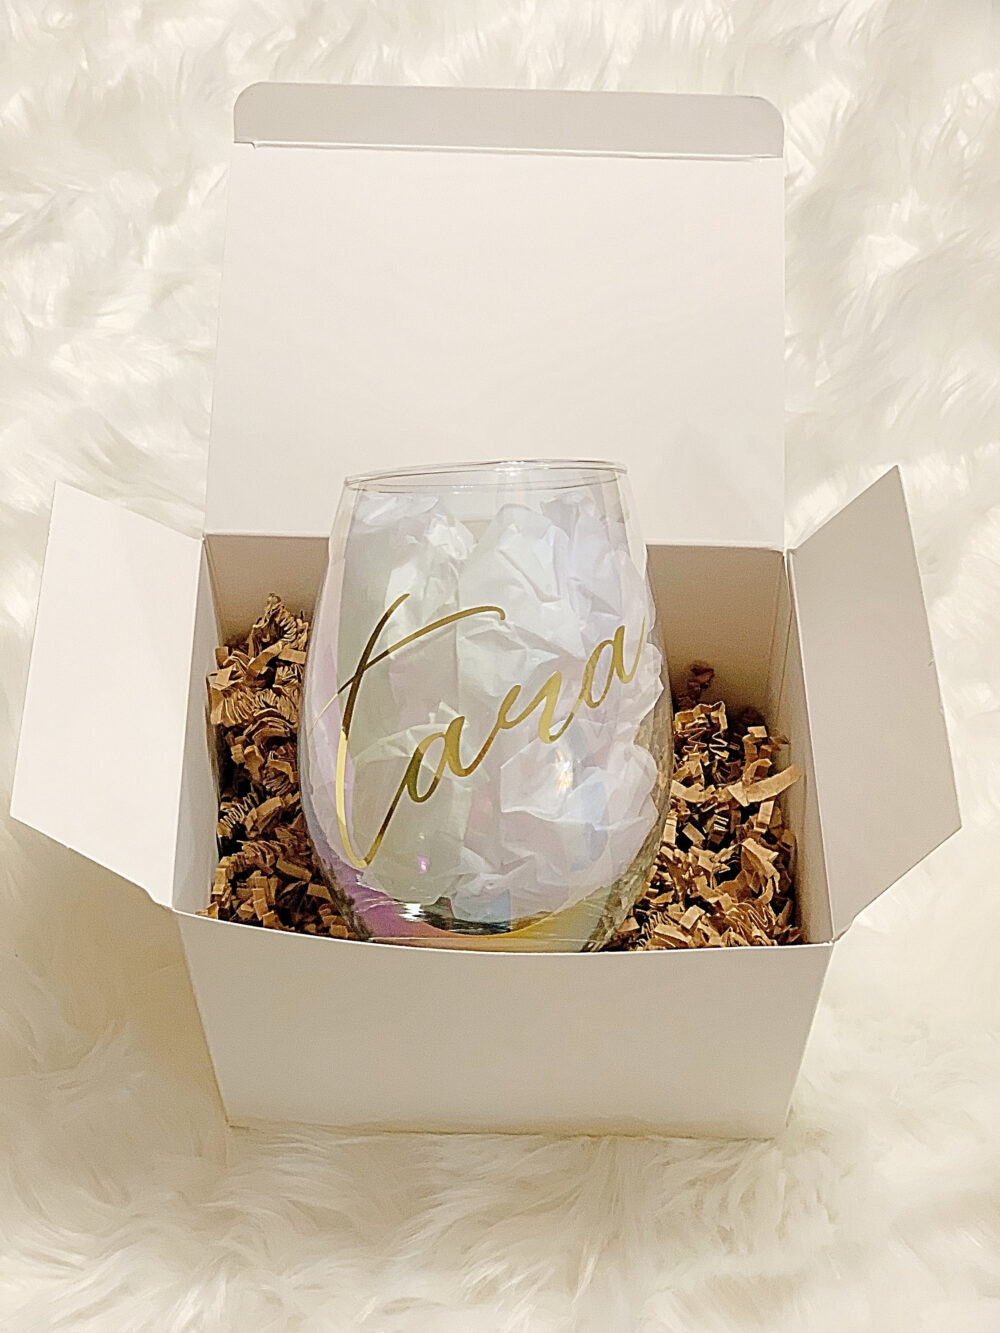 Bridesmaid Wine Glass, Proposal Gift Box, Maid Of Honor Gift, Wedding Shower, Personalized Tumbler